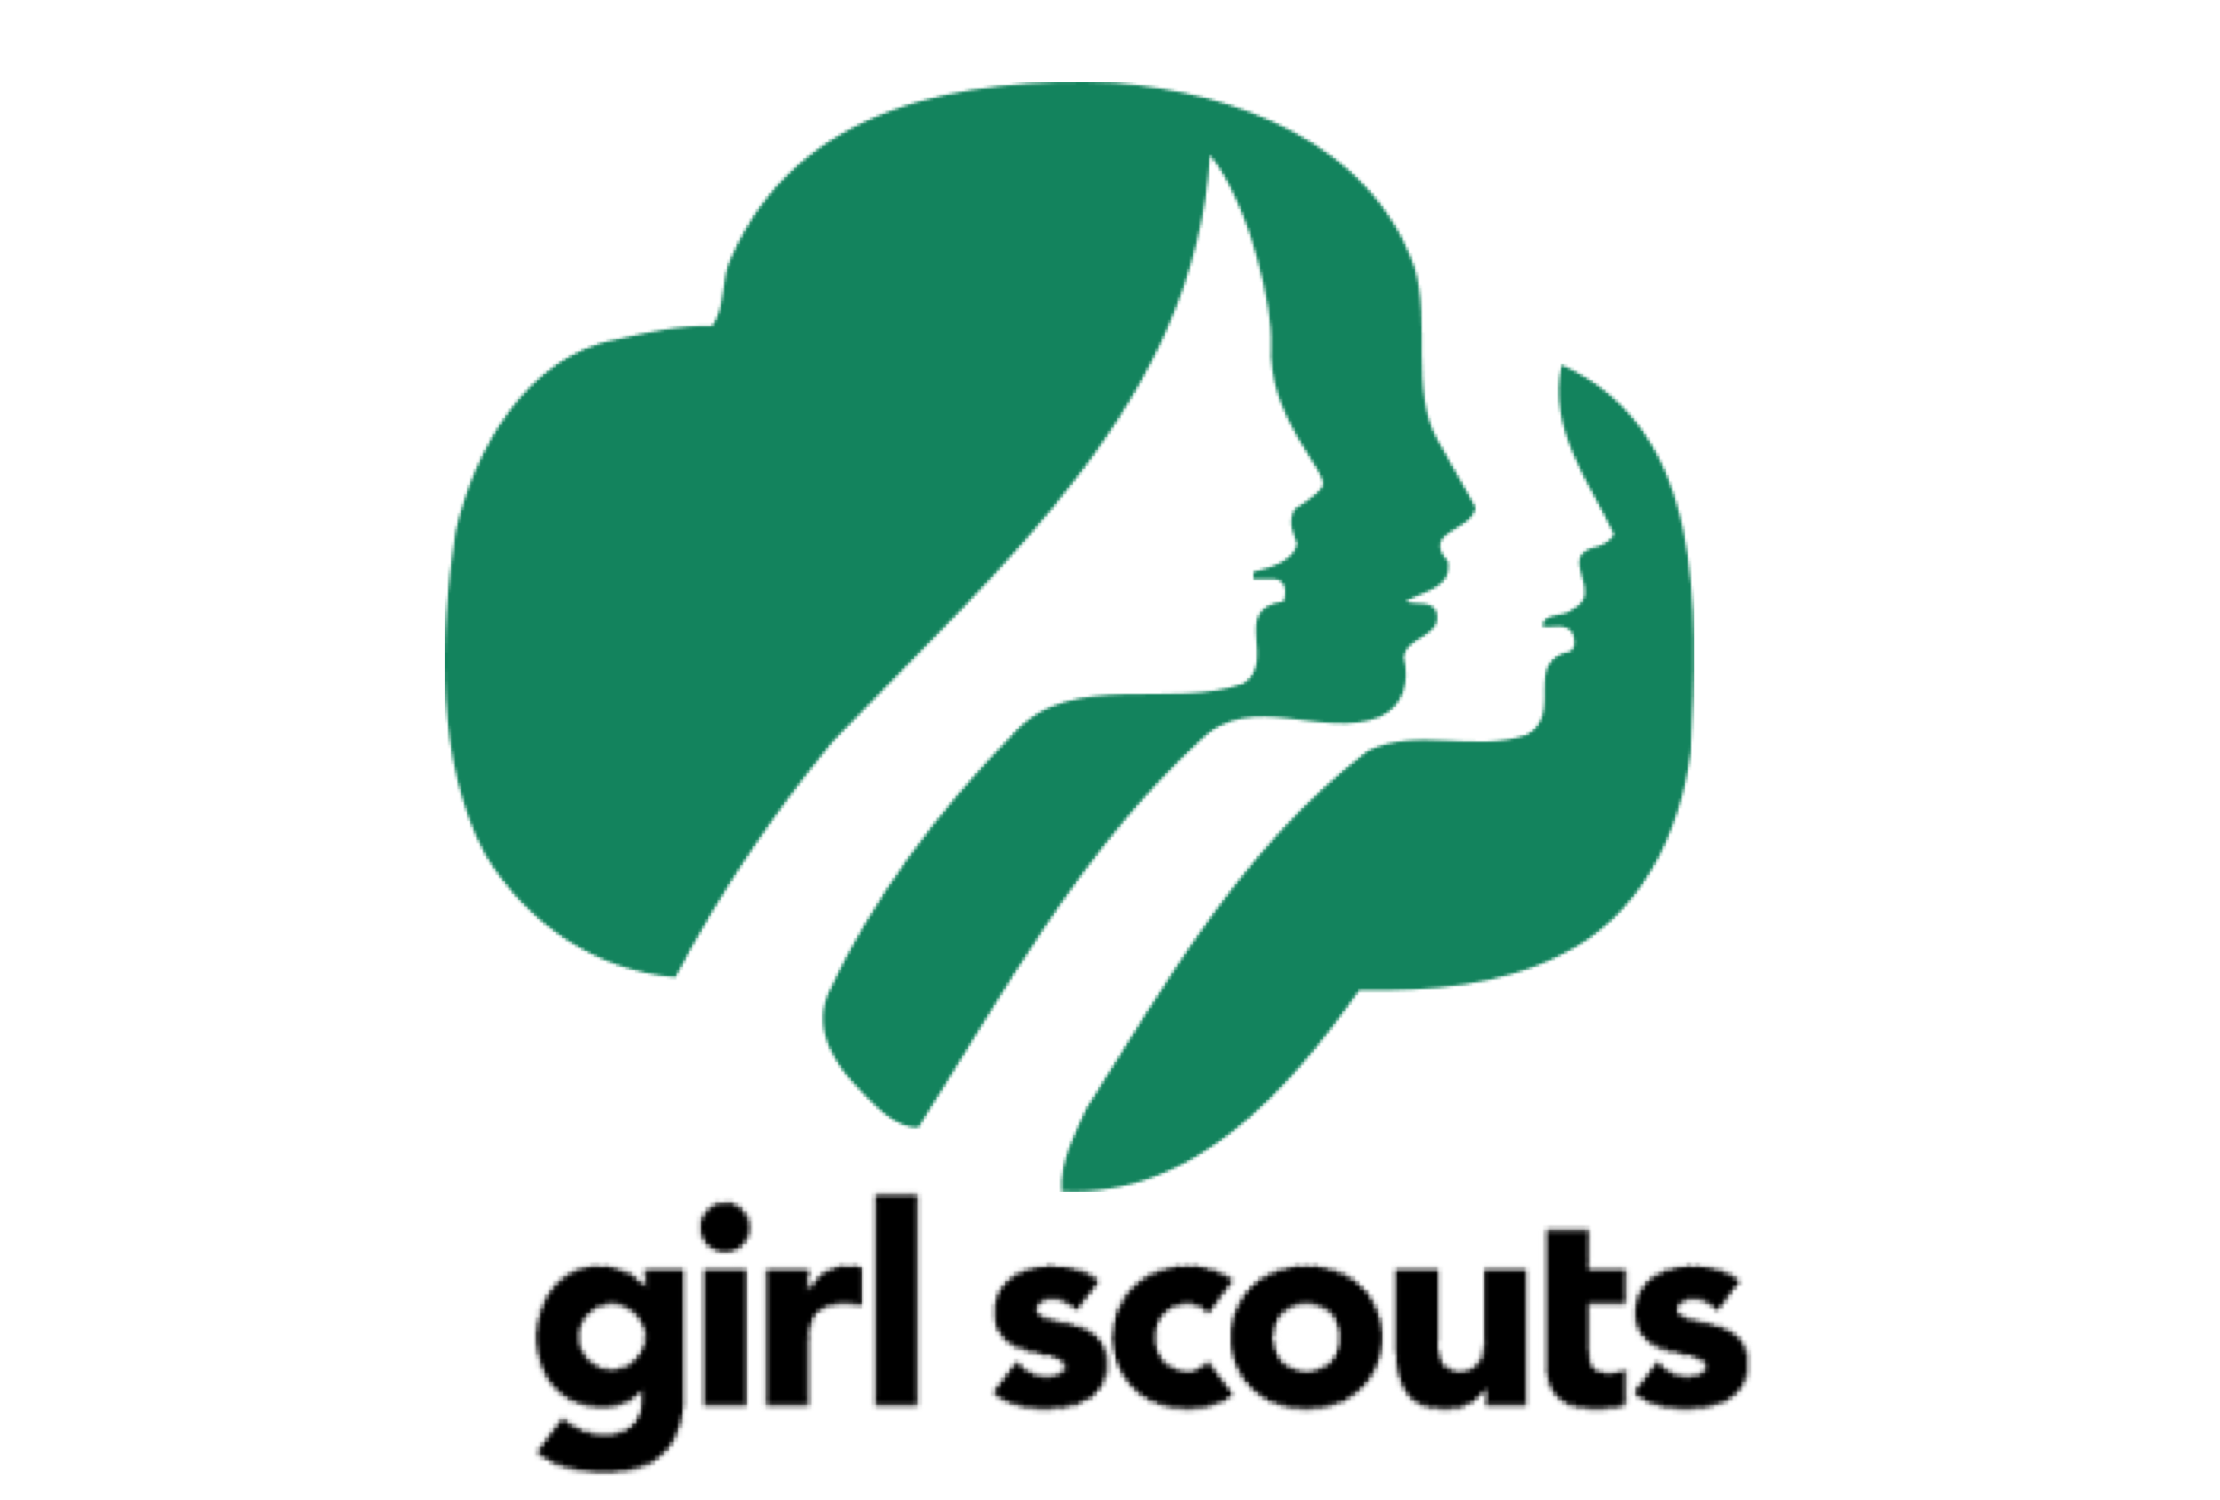 Girl Scouts - Details coming soon!